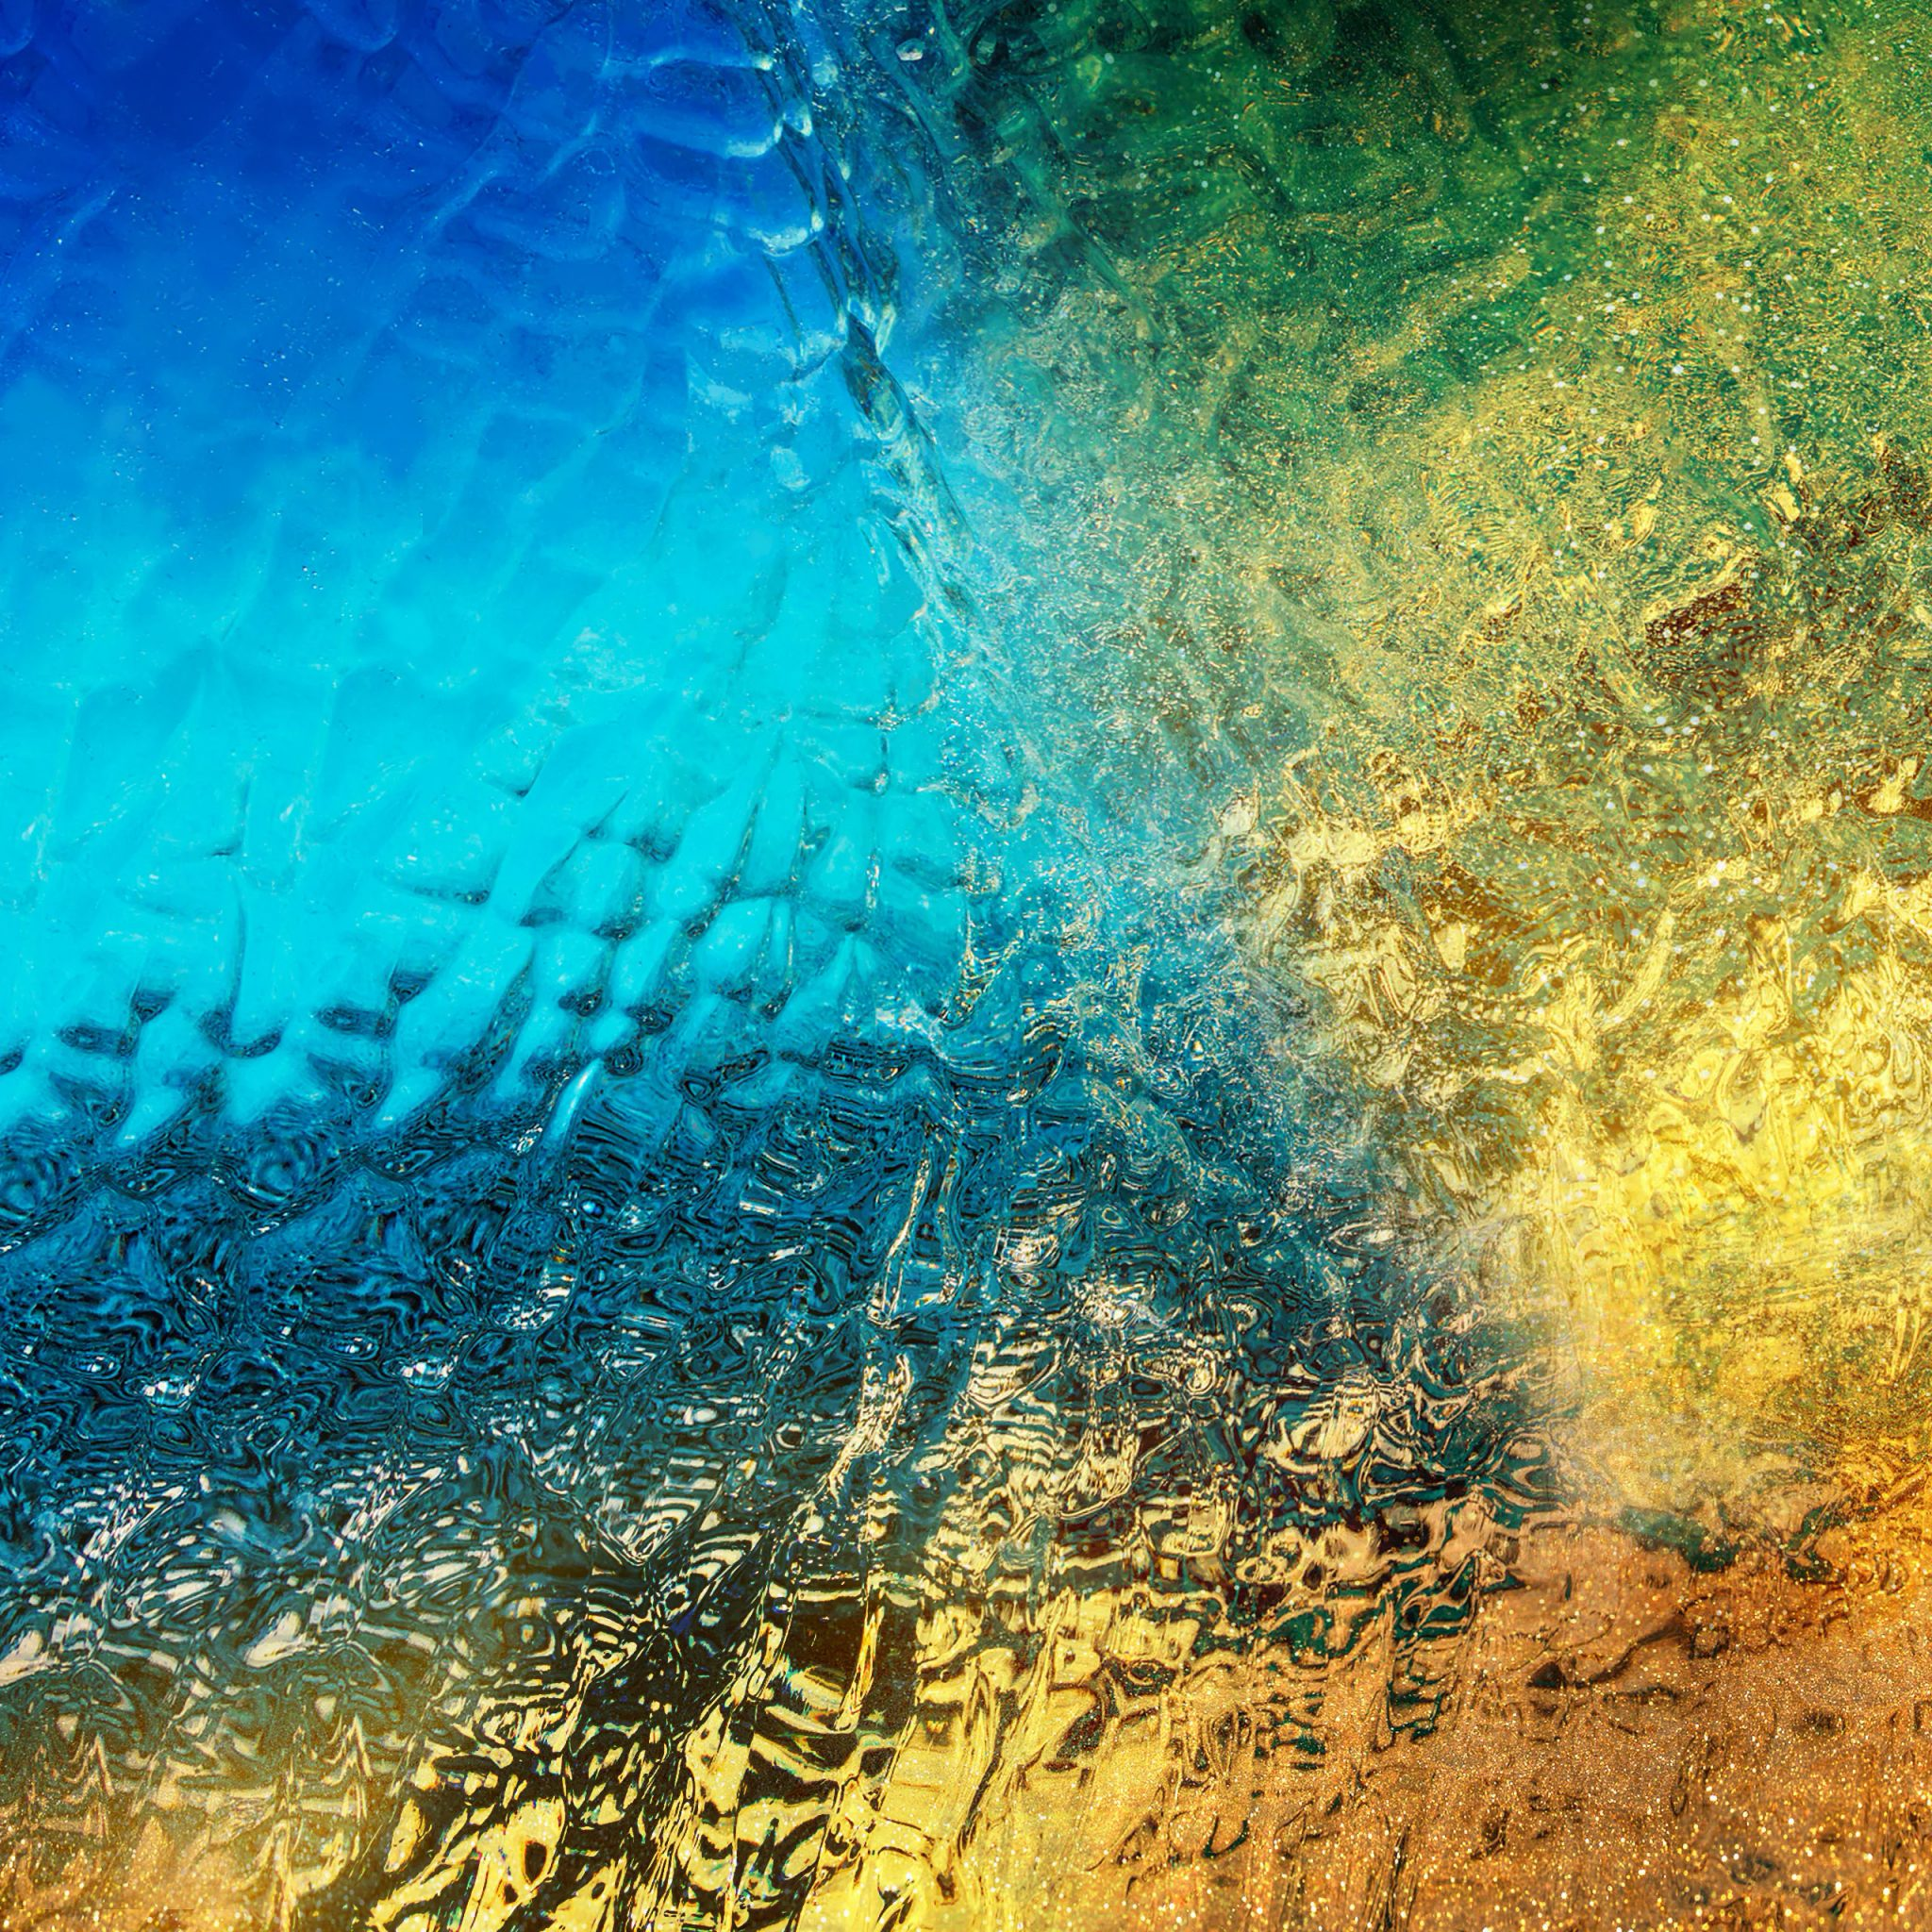 GalaxyNote4Wallpaper AndroDollar 10 - Galaxy Note 4 Lock Screen Wallpaper available for download